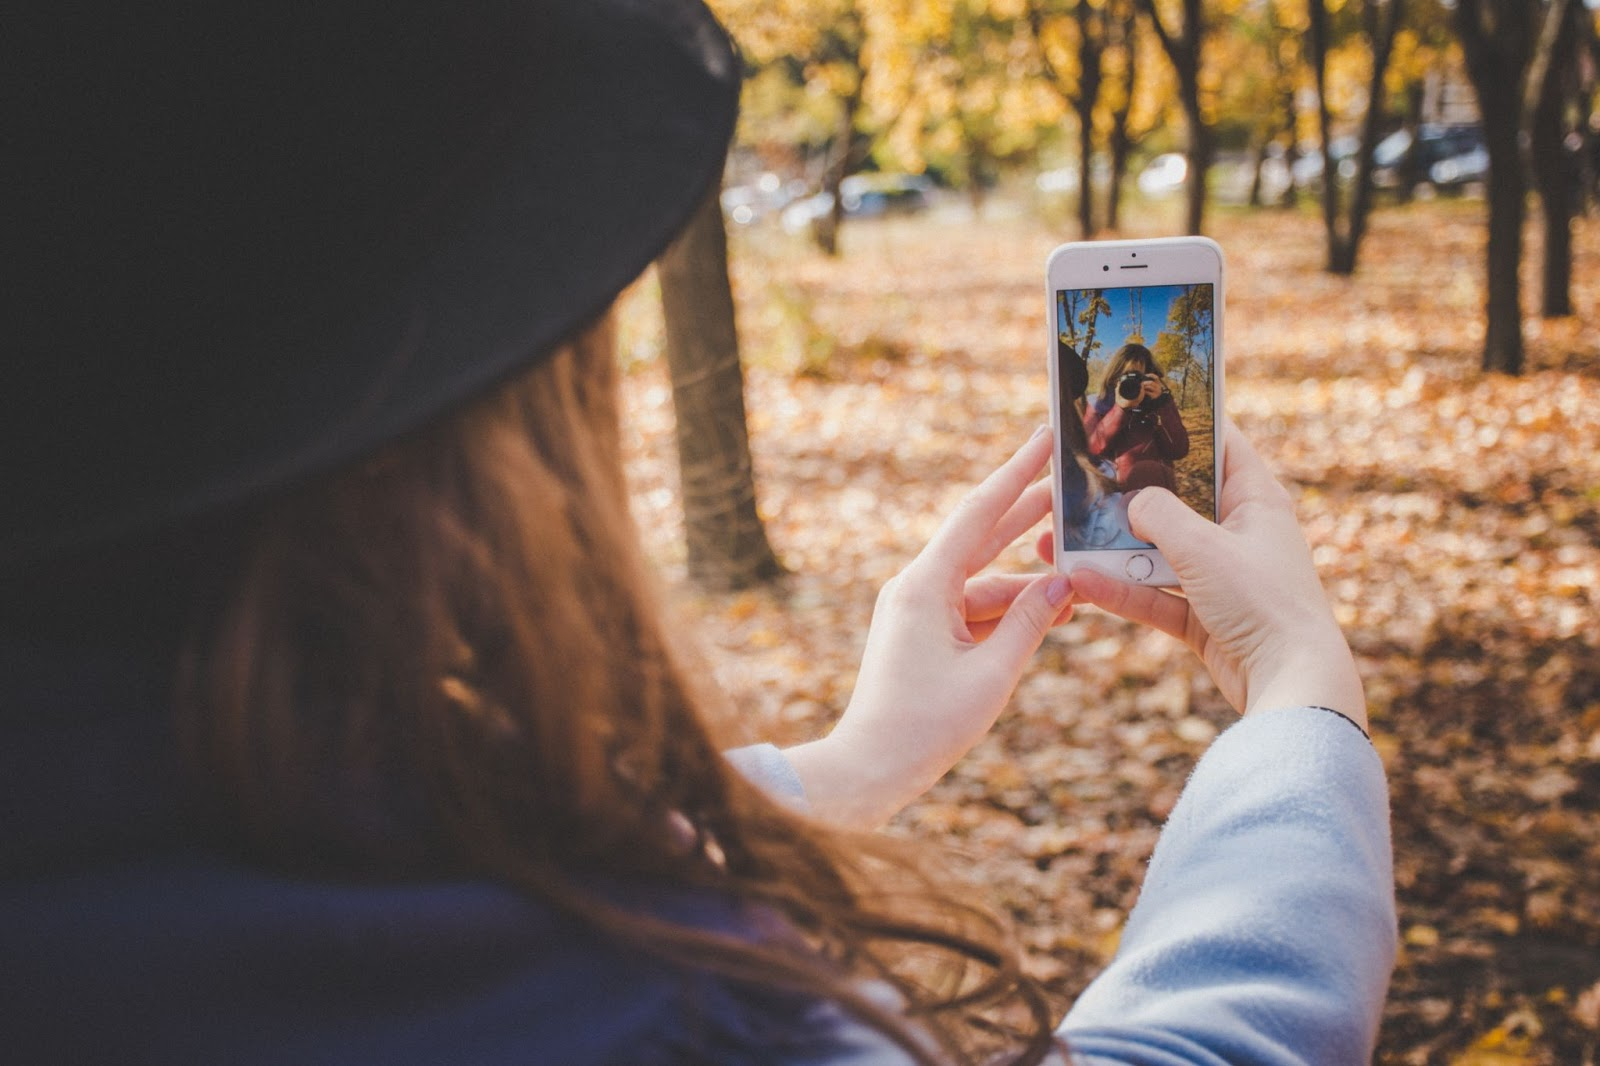 A girl taking a selfie in a park